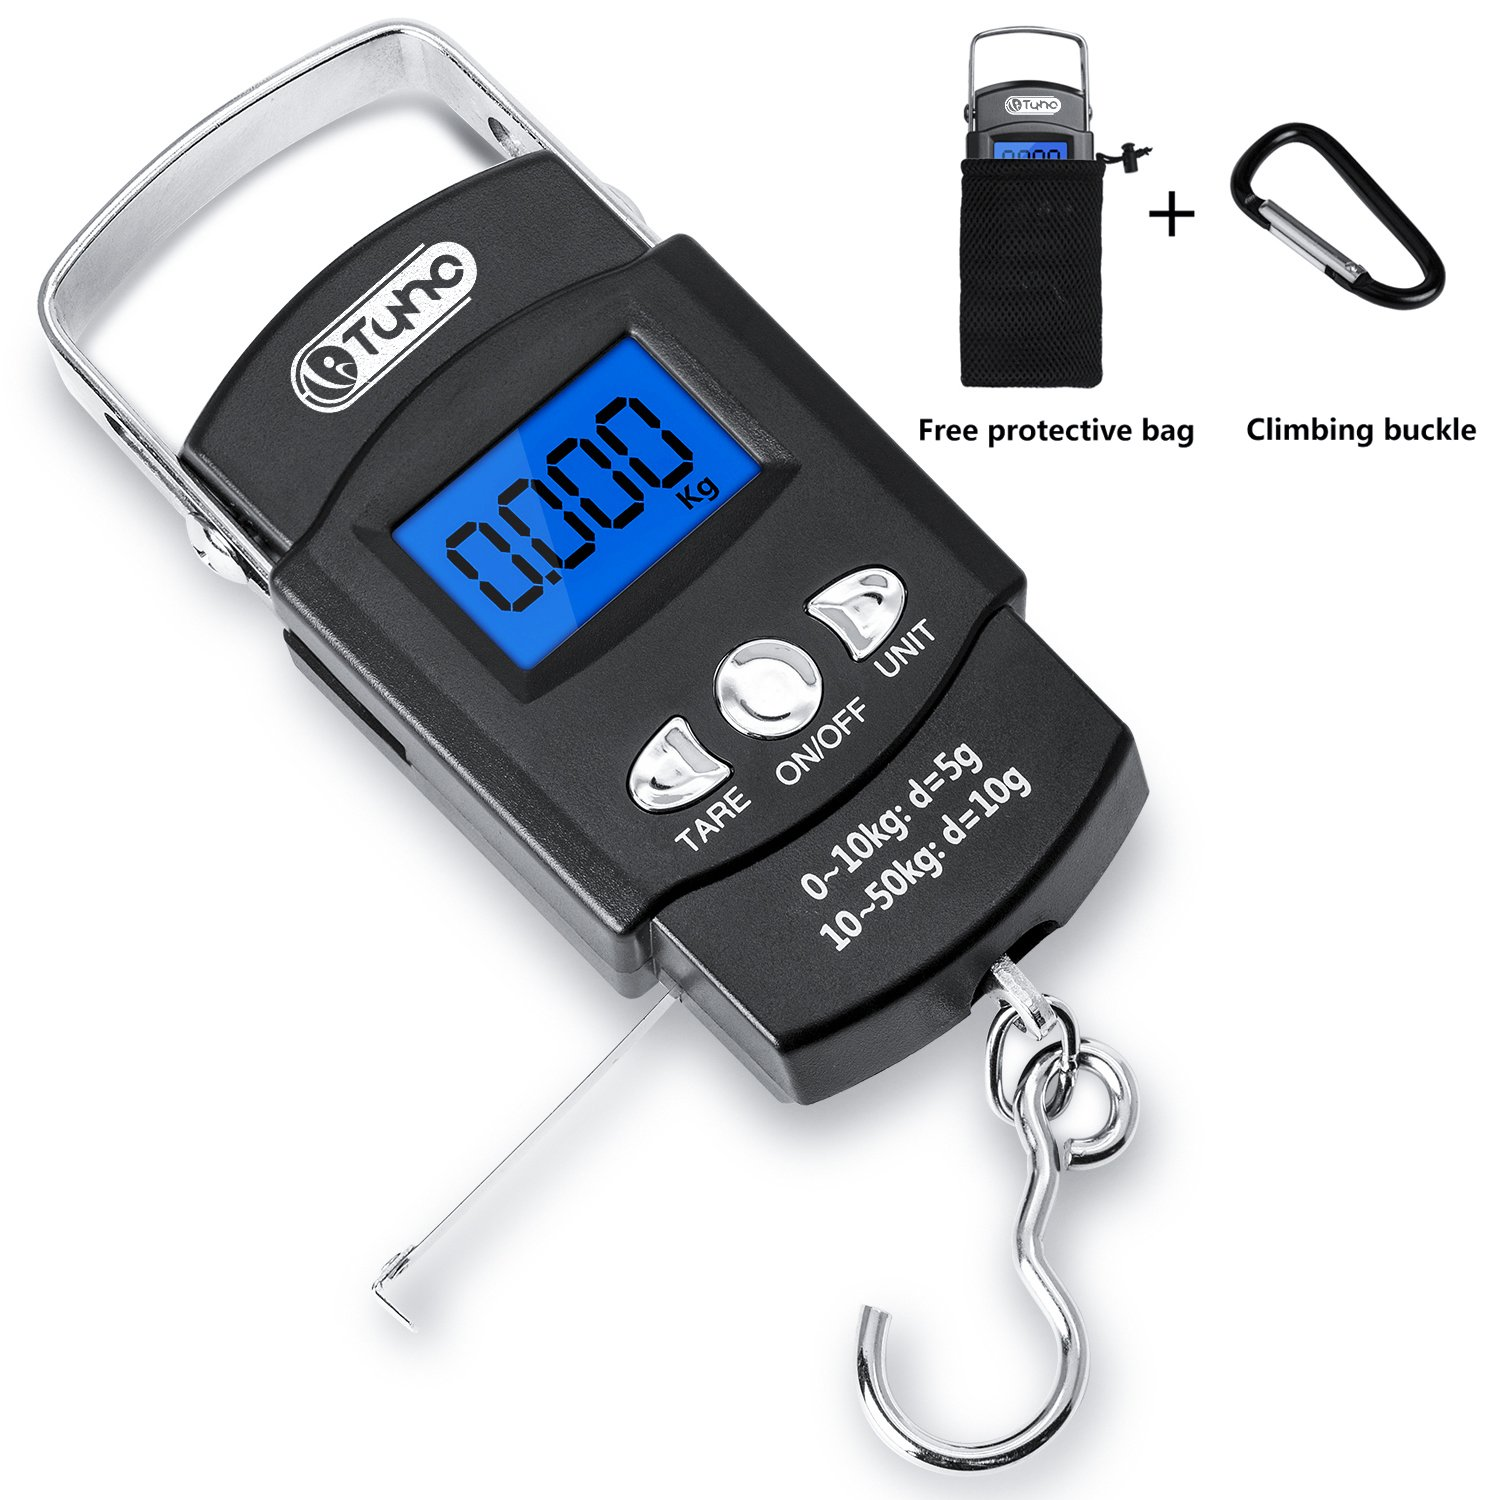 dd1b778a09e7 TyhoTech Fishing Scale 110lb/50kg Backlit LCD Screen Portable Electronic  Balance Digital Fish Hook Hanging Scale with Measuring Tape Ruler, D Shape  ...